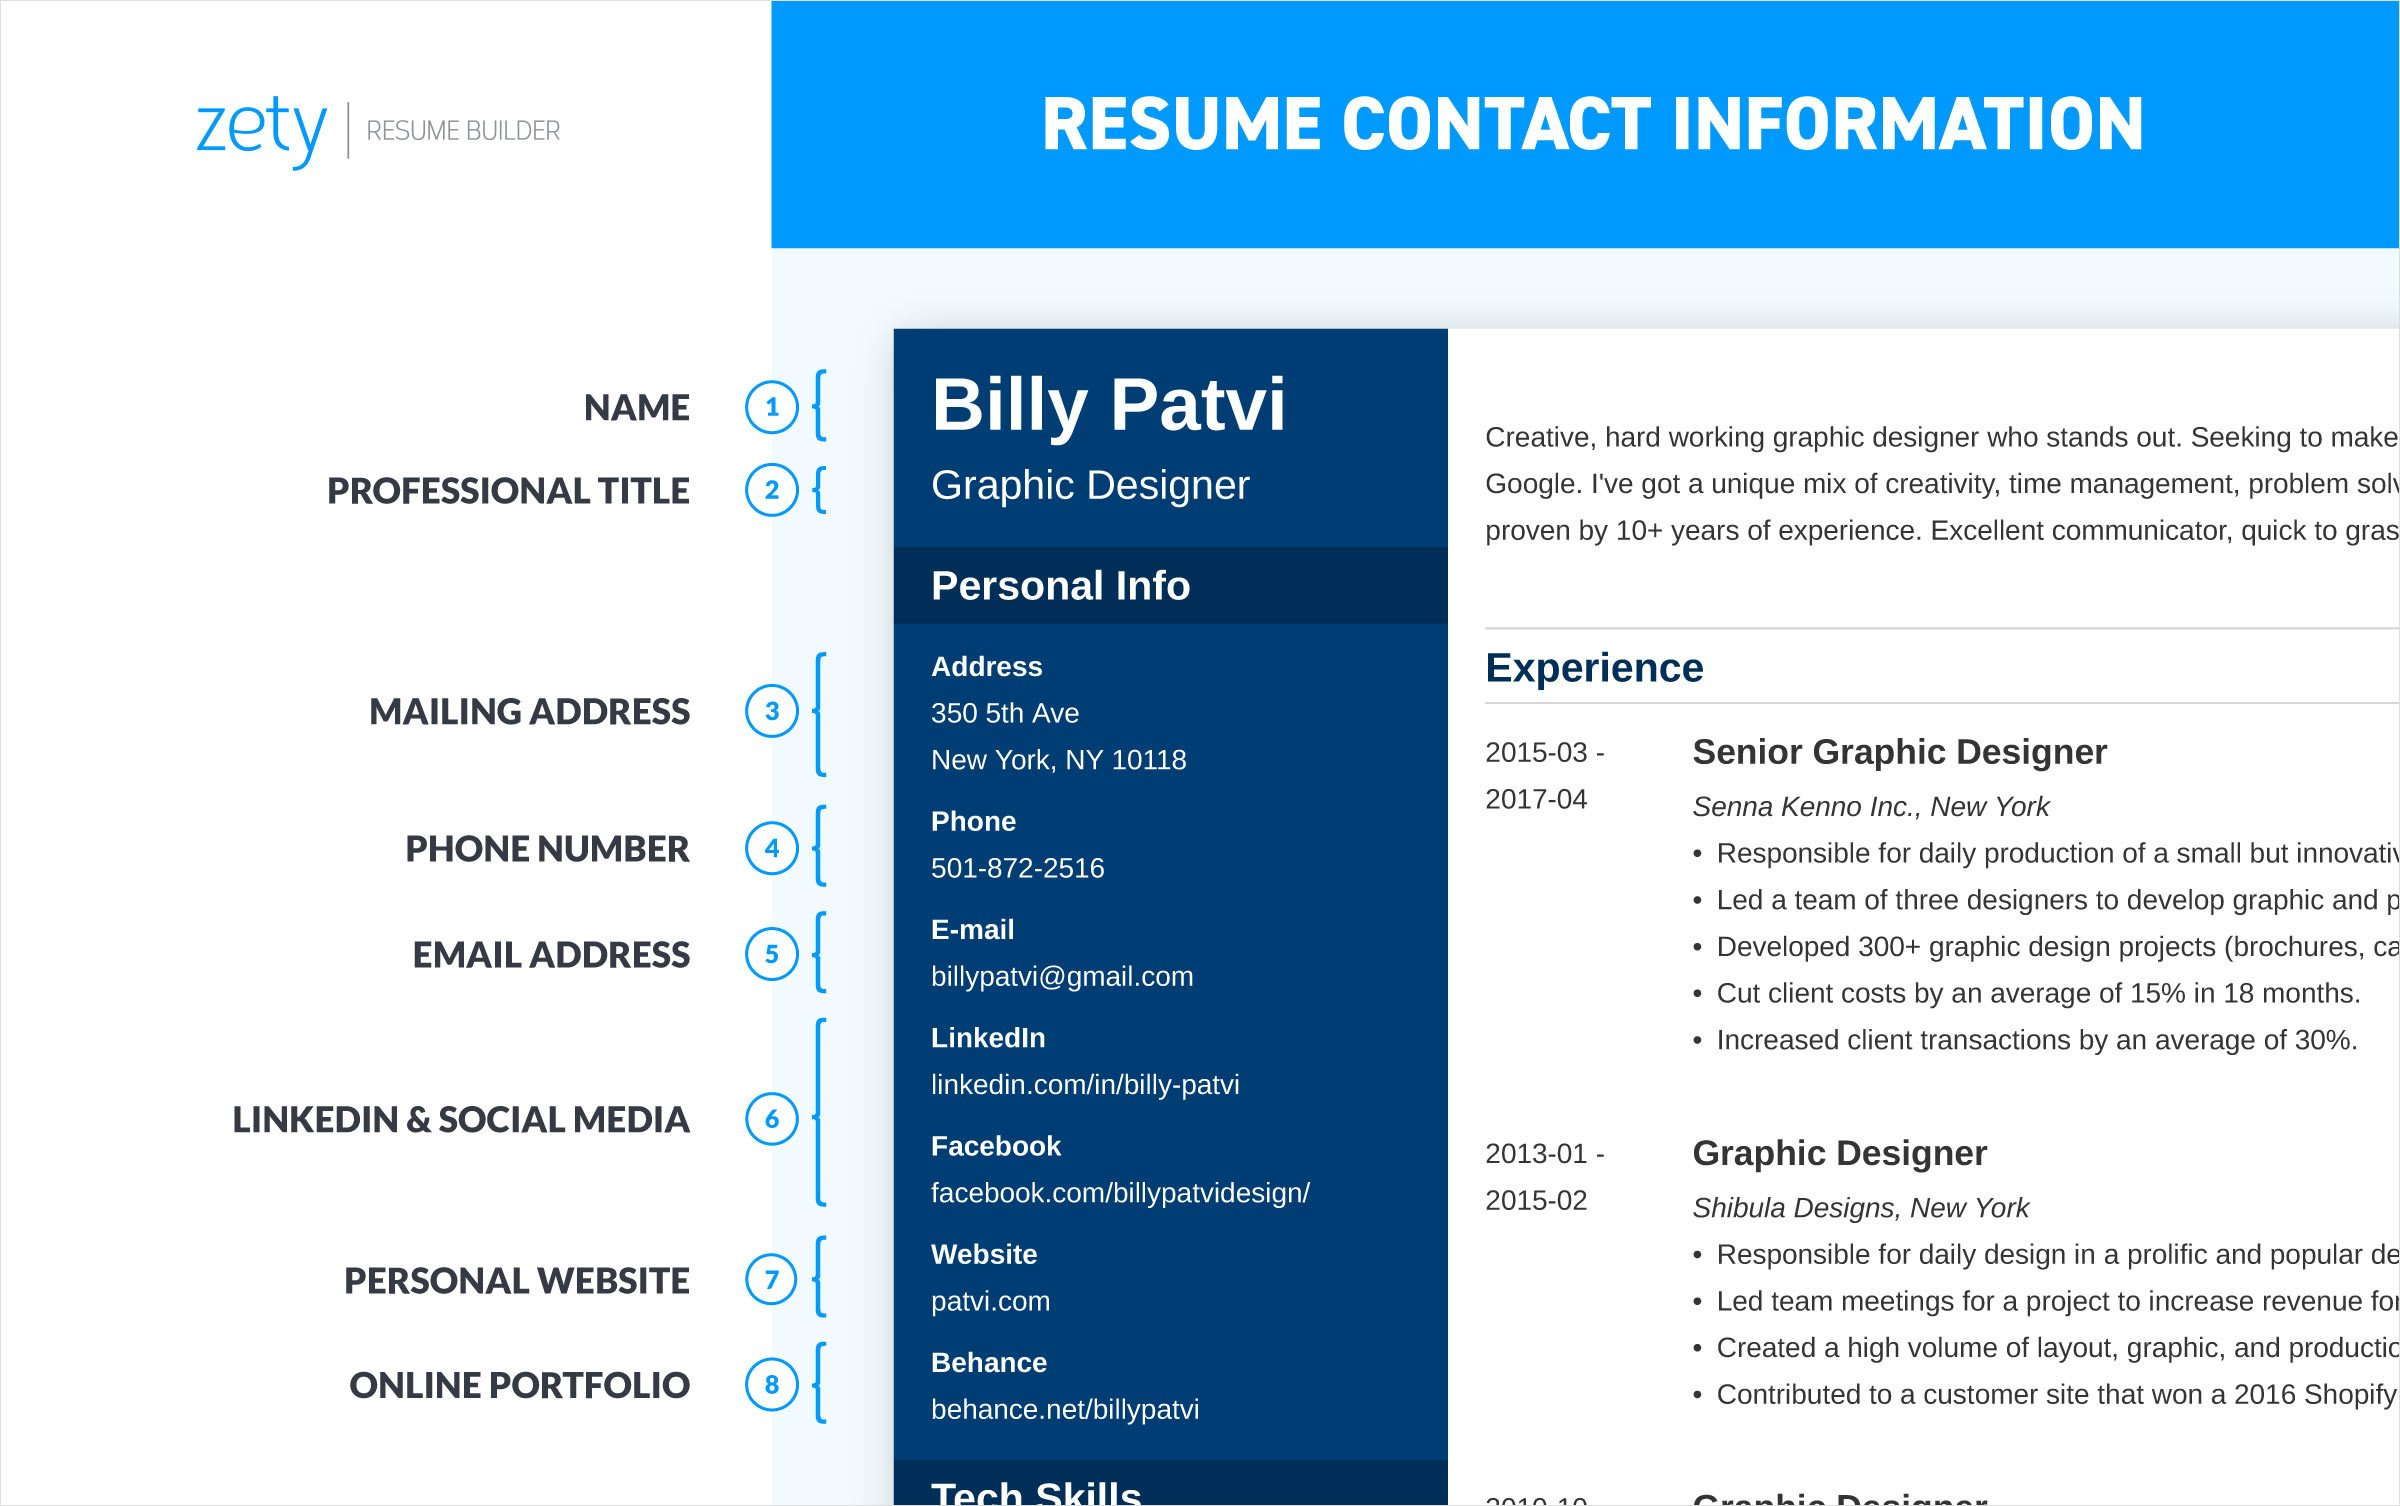 How To Make A Resume For A Job From Application To Interview In 24h